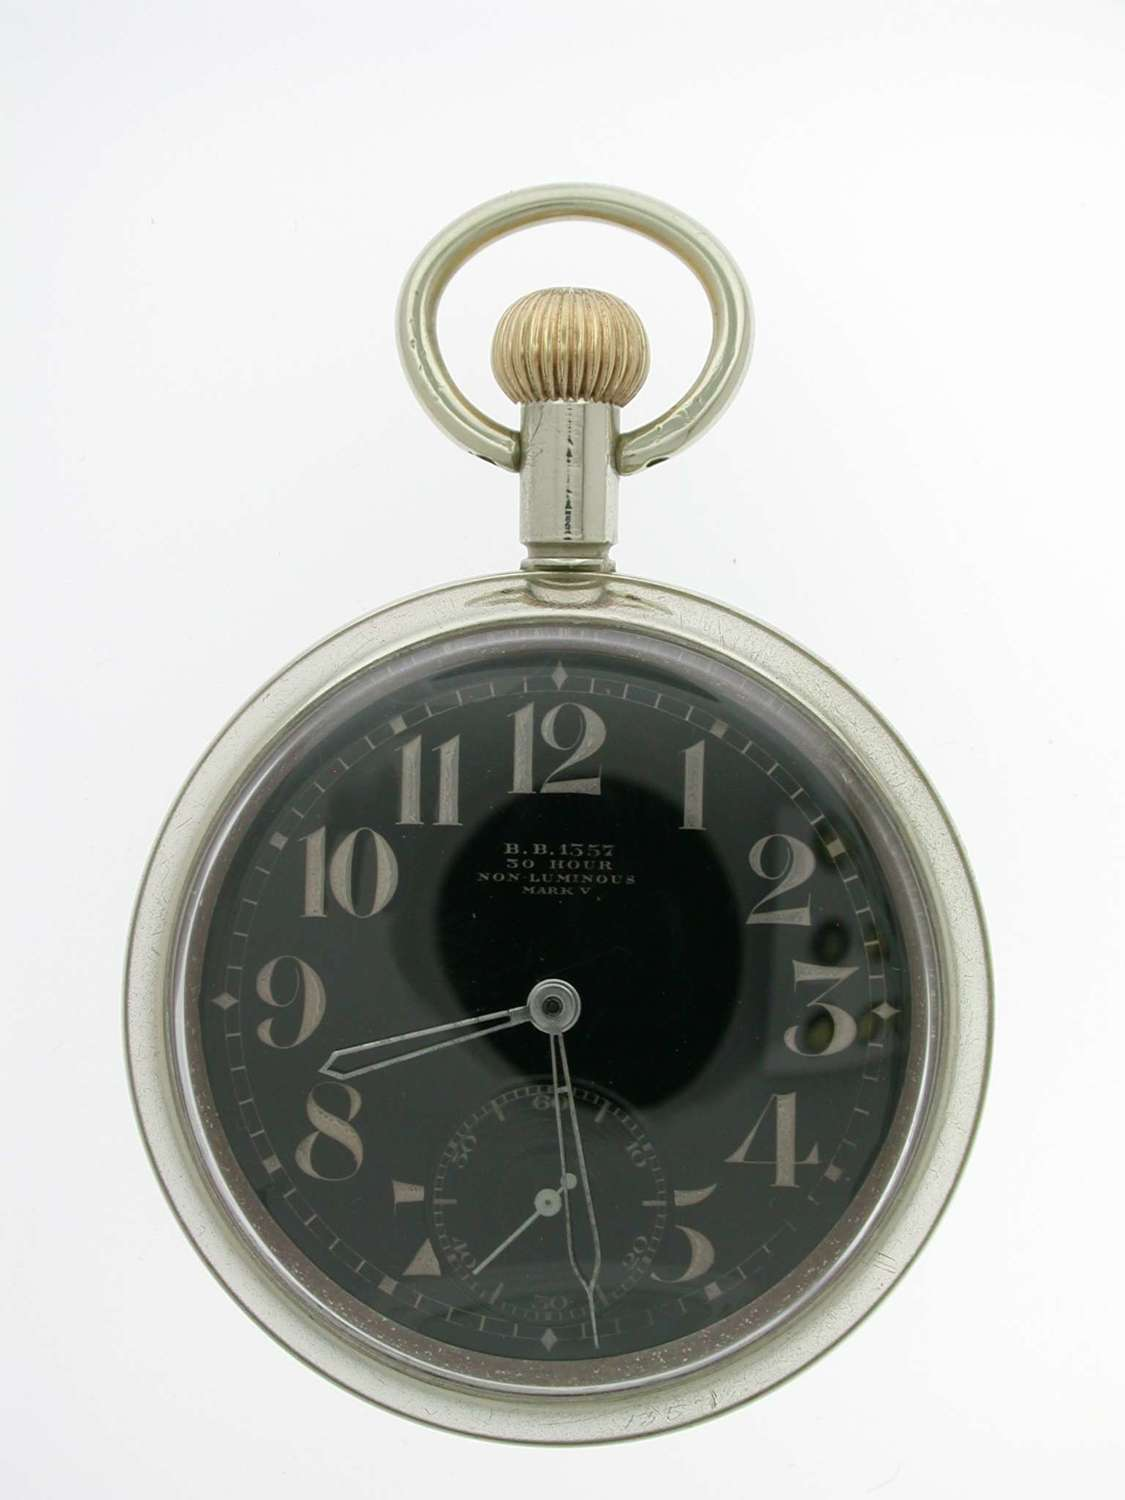 Omega Military Steel Original Men's Pocket Watch 1942 Airforce